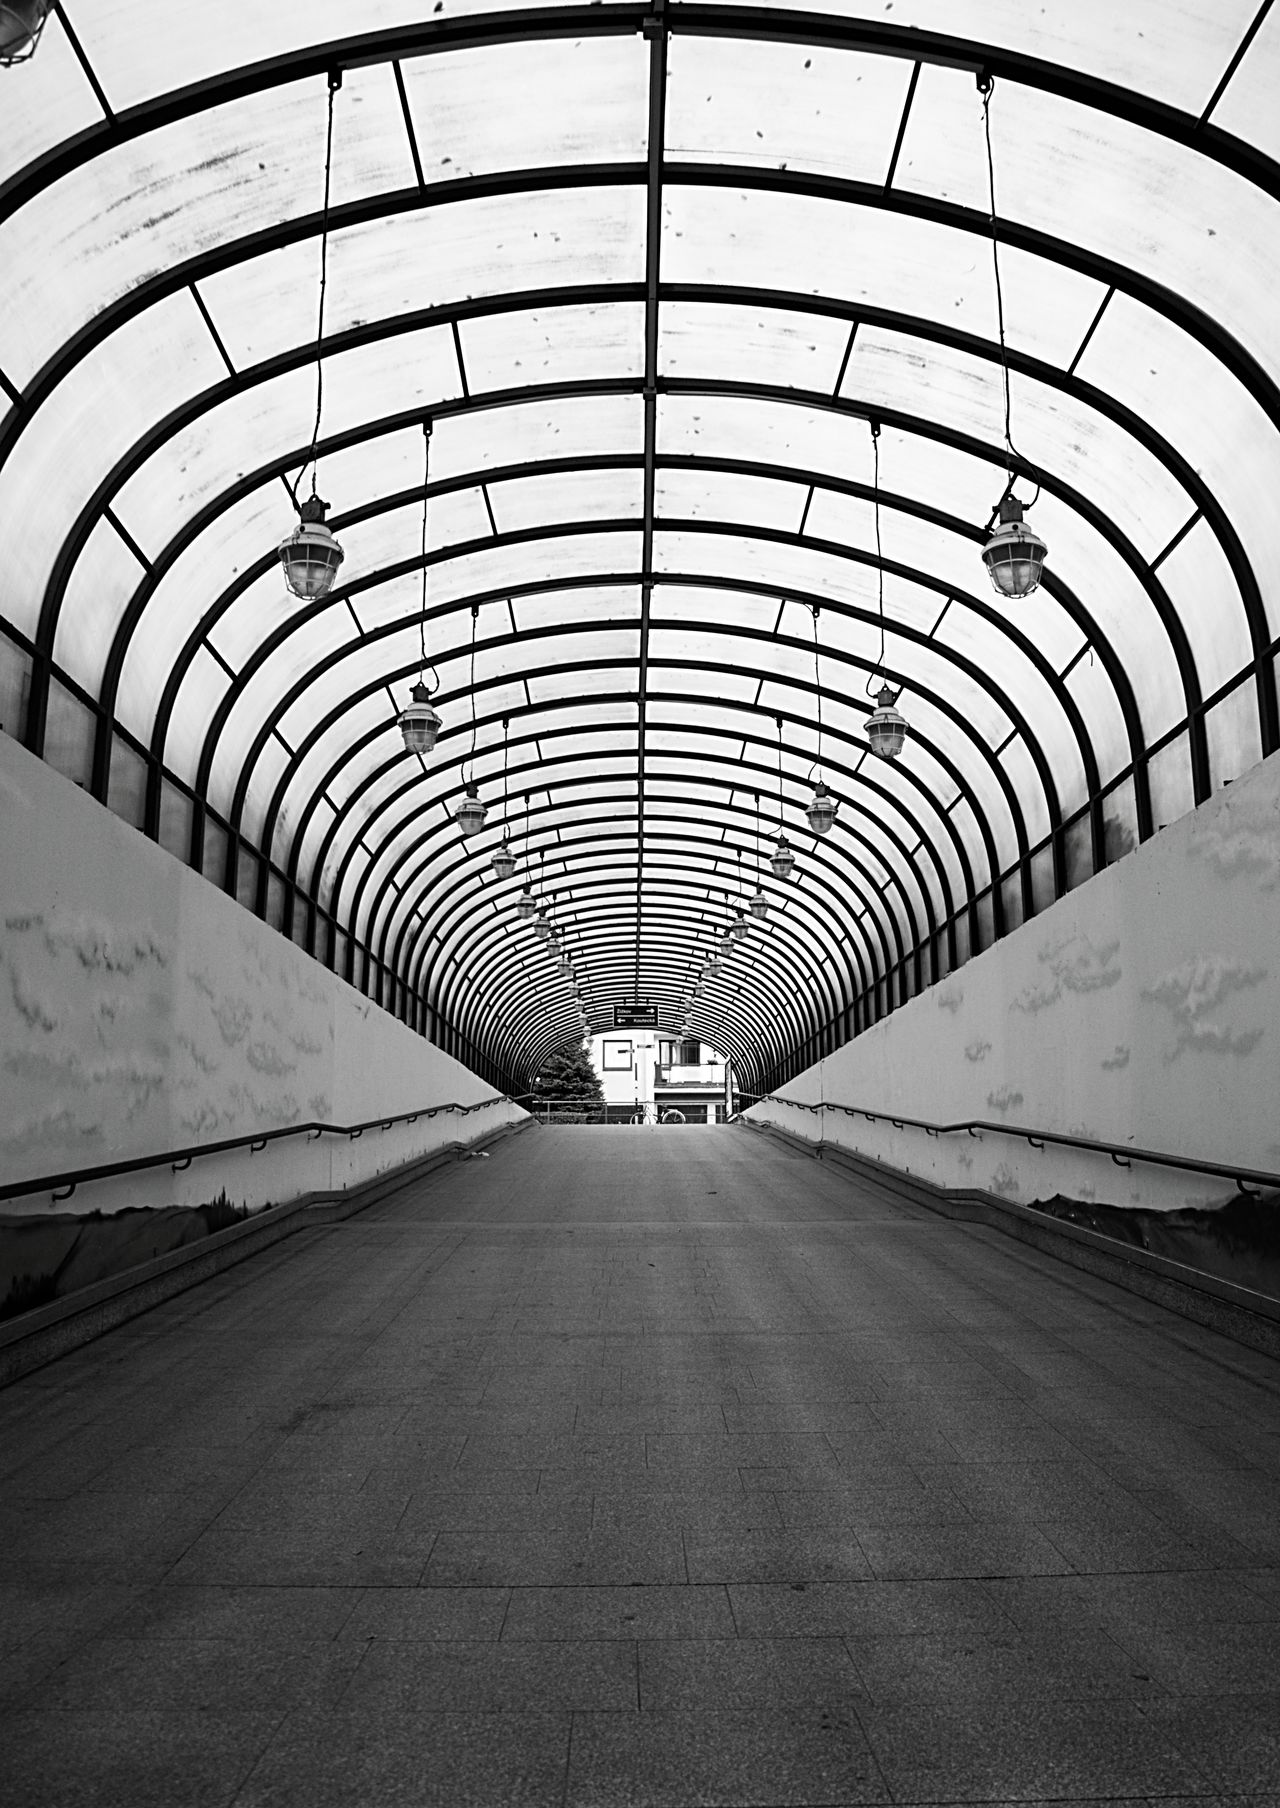 Tunel Architecture B&w Photography Modern Tunnel